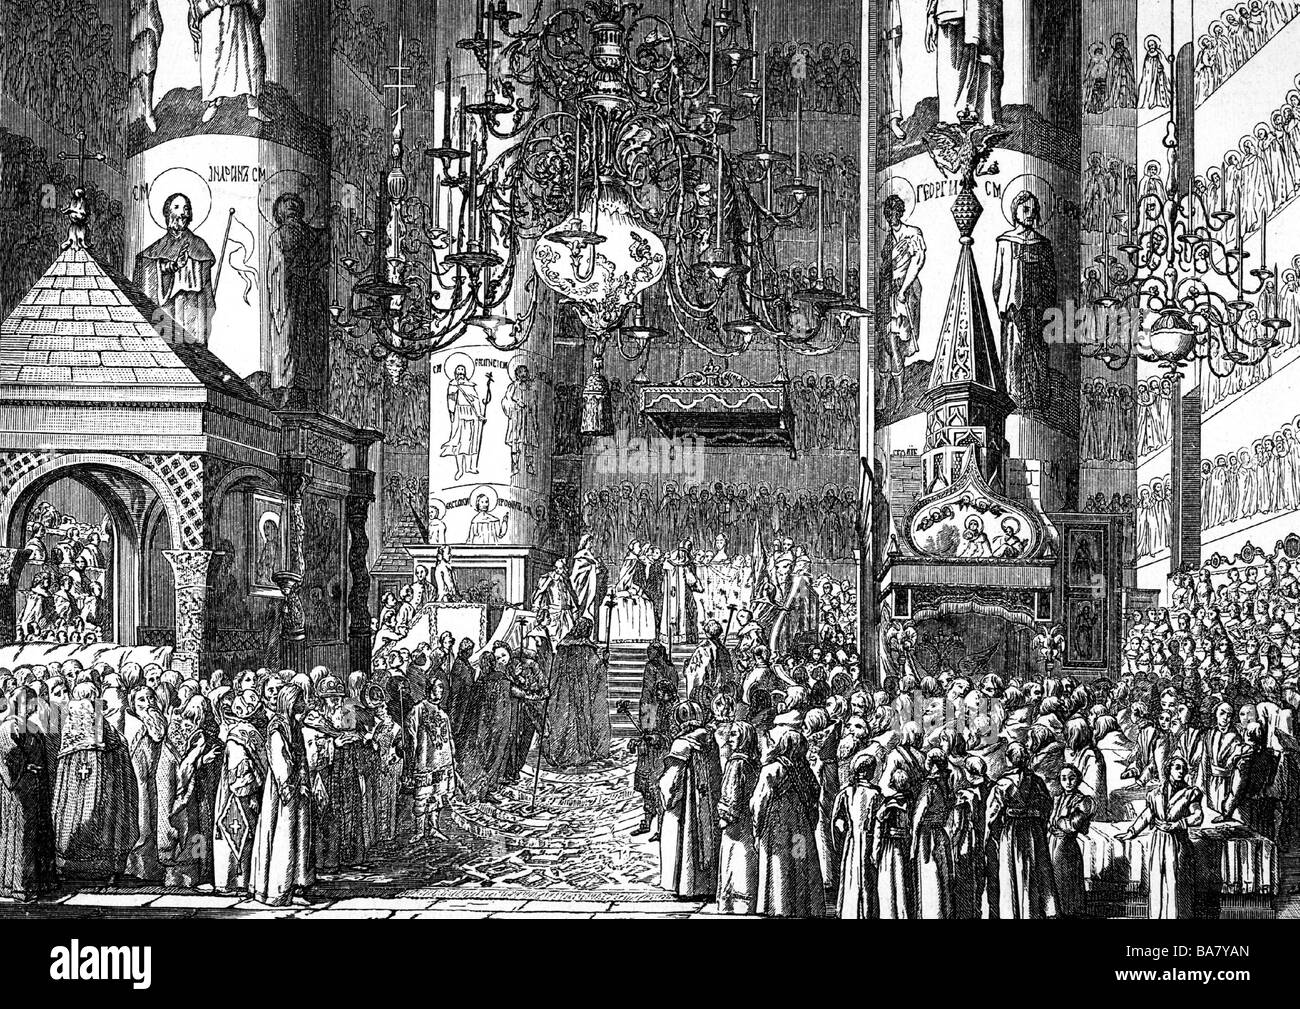 """Catherine II """"the Great"""", 2.5.1729 - 17.11.1796, Empress of Russia 1762 - 1796, coronation in the Dormition Cathedral, Stock Photo"""